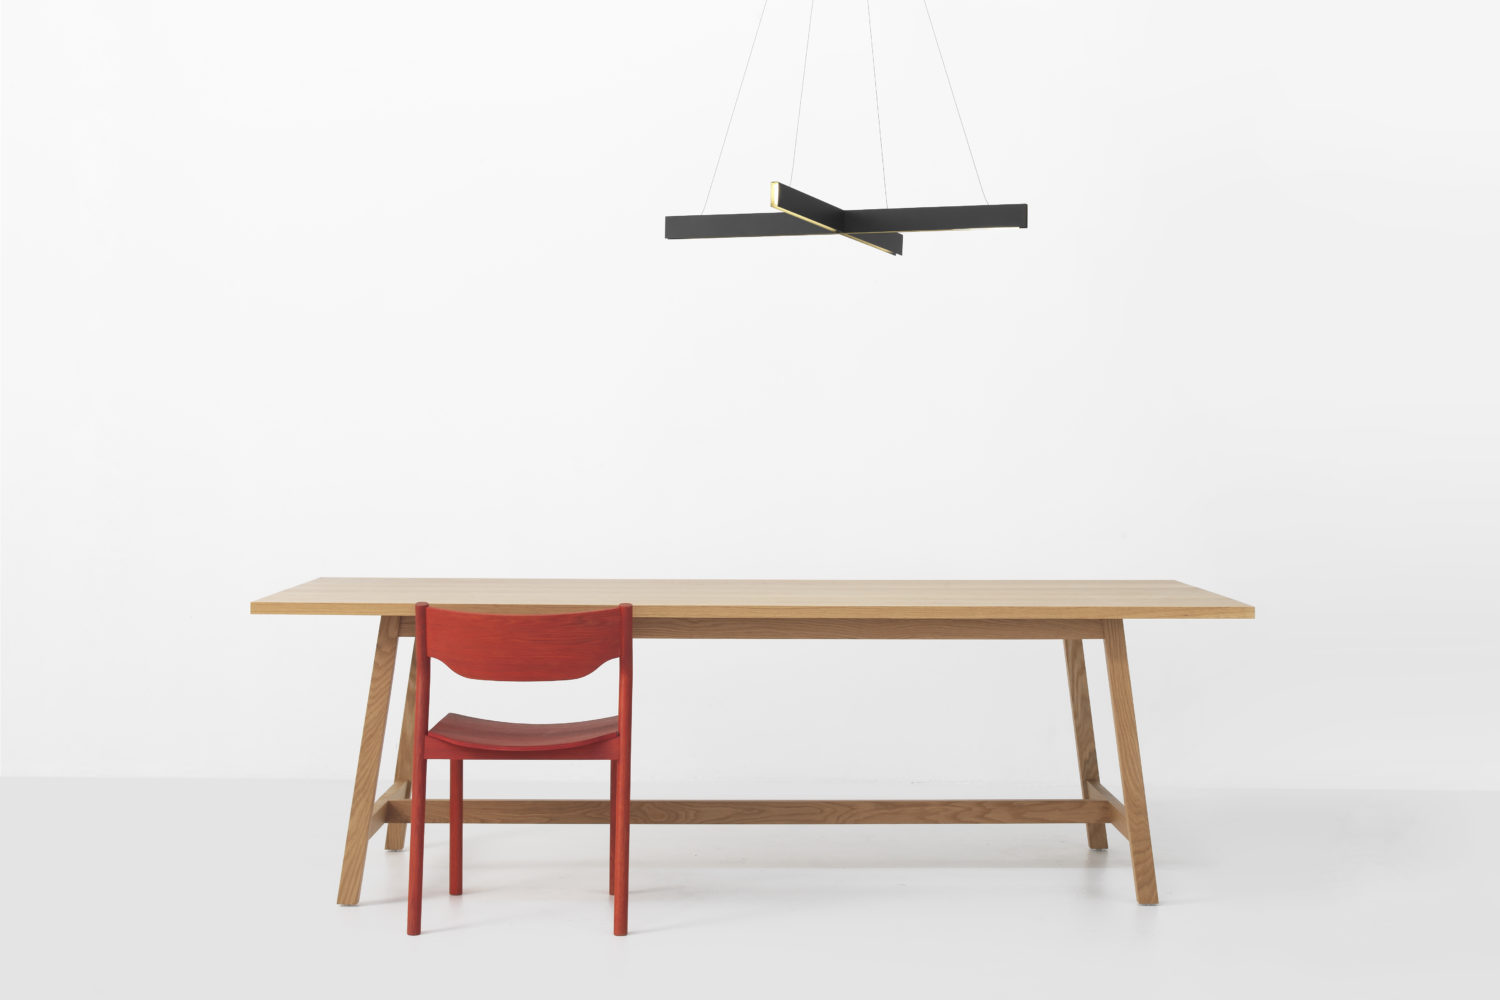 Resident Cross Pendant   Hawk Table   Tangerine Chair